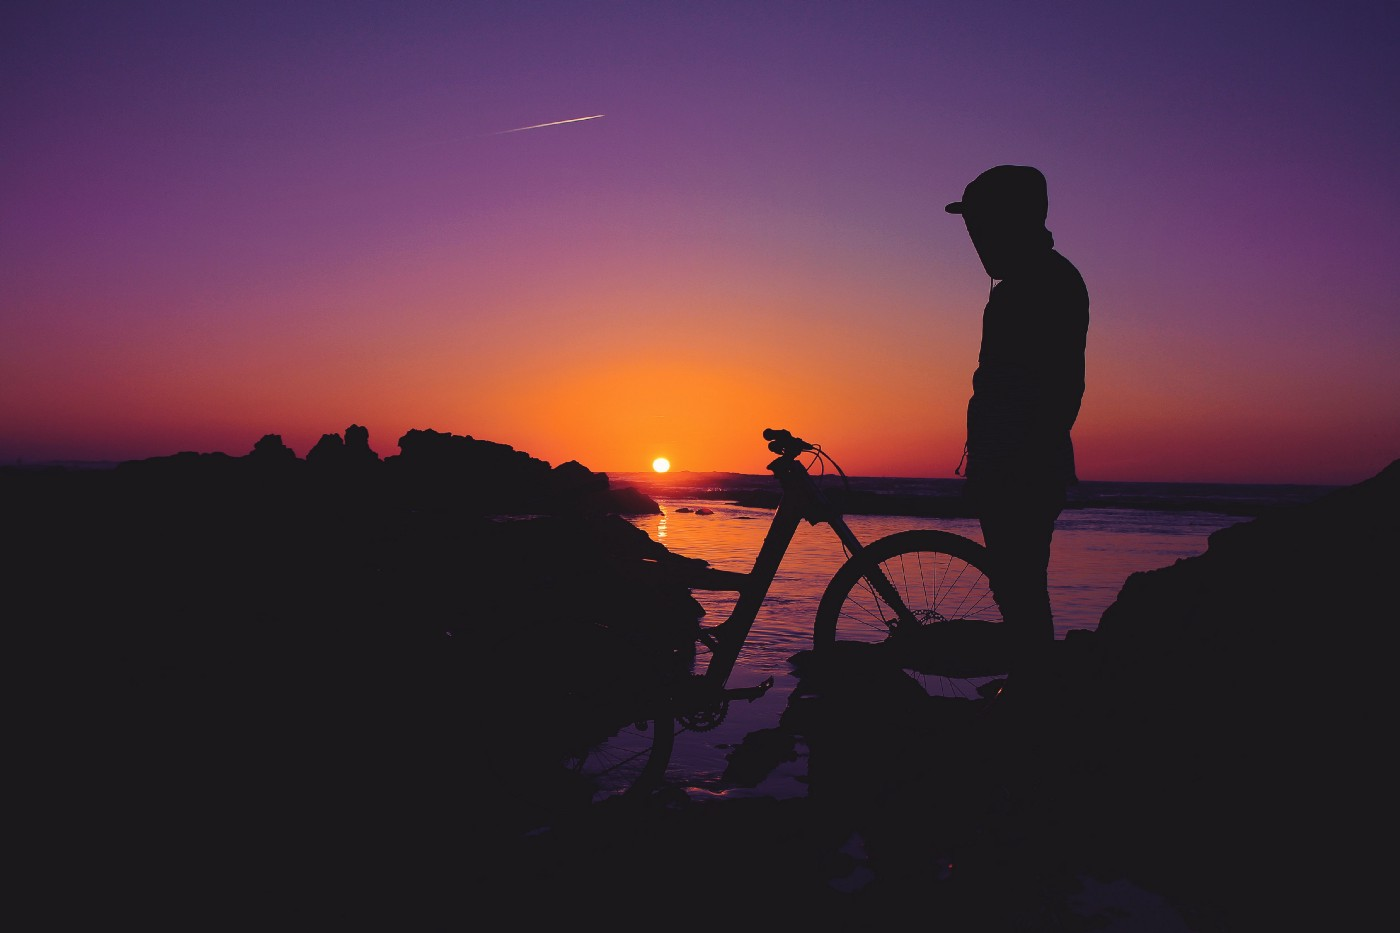 The silhouette of a man standing by his bike at sunset.